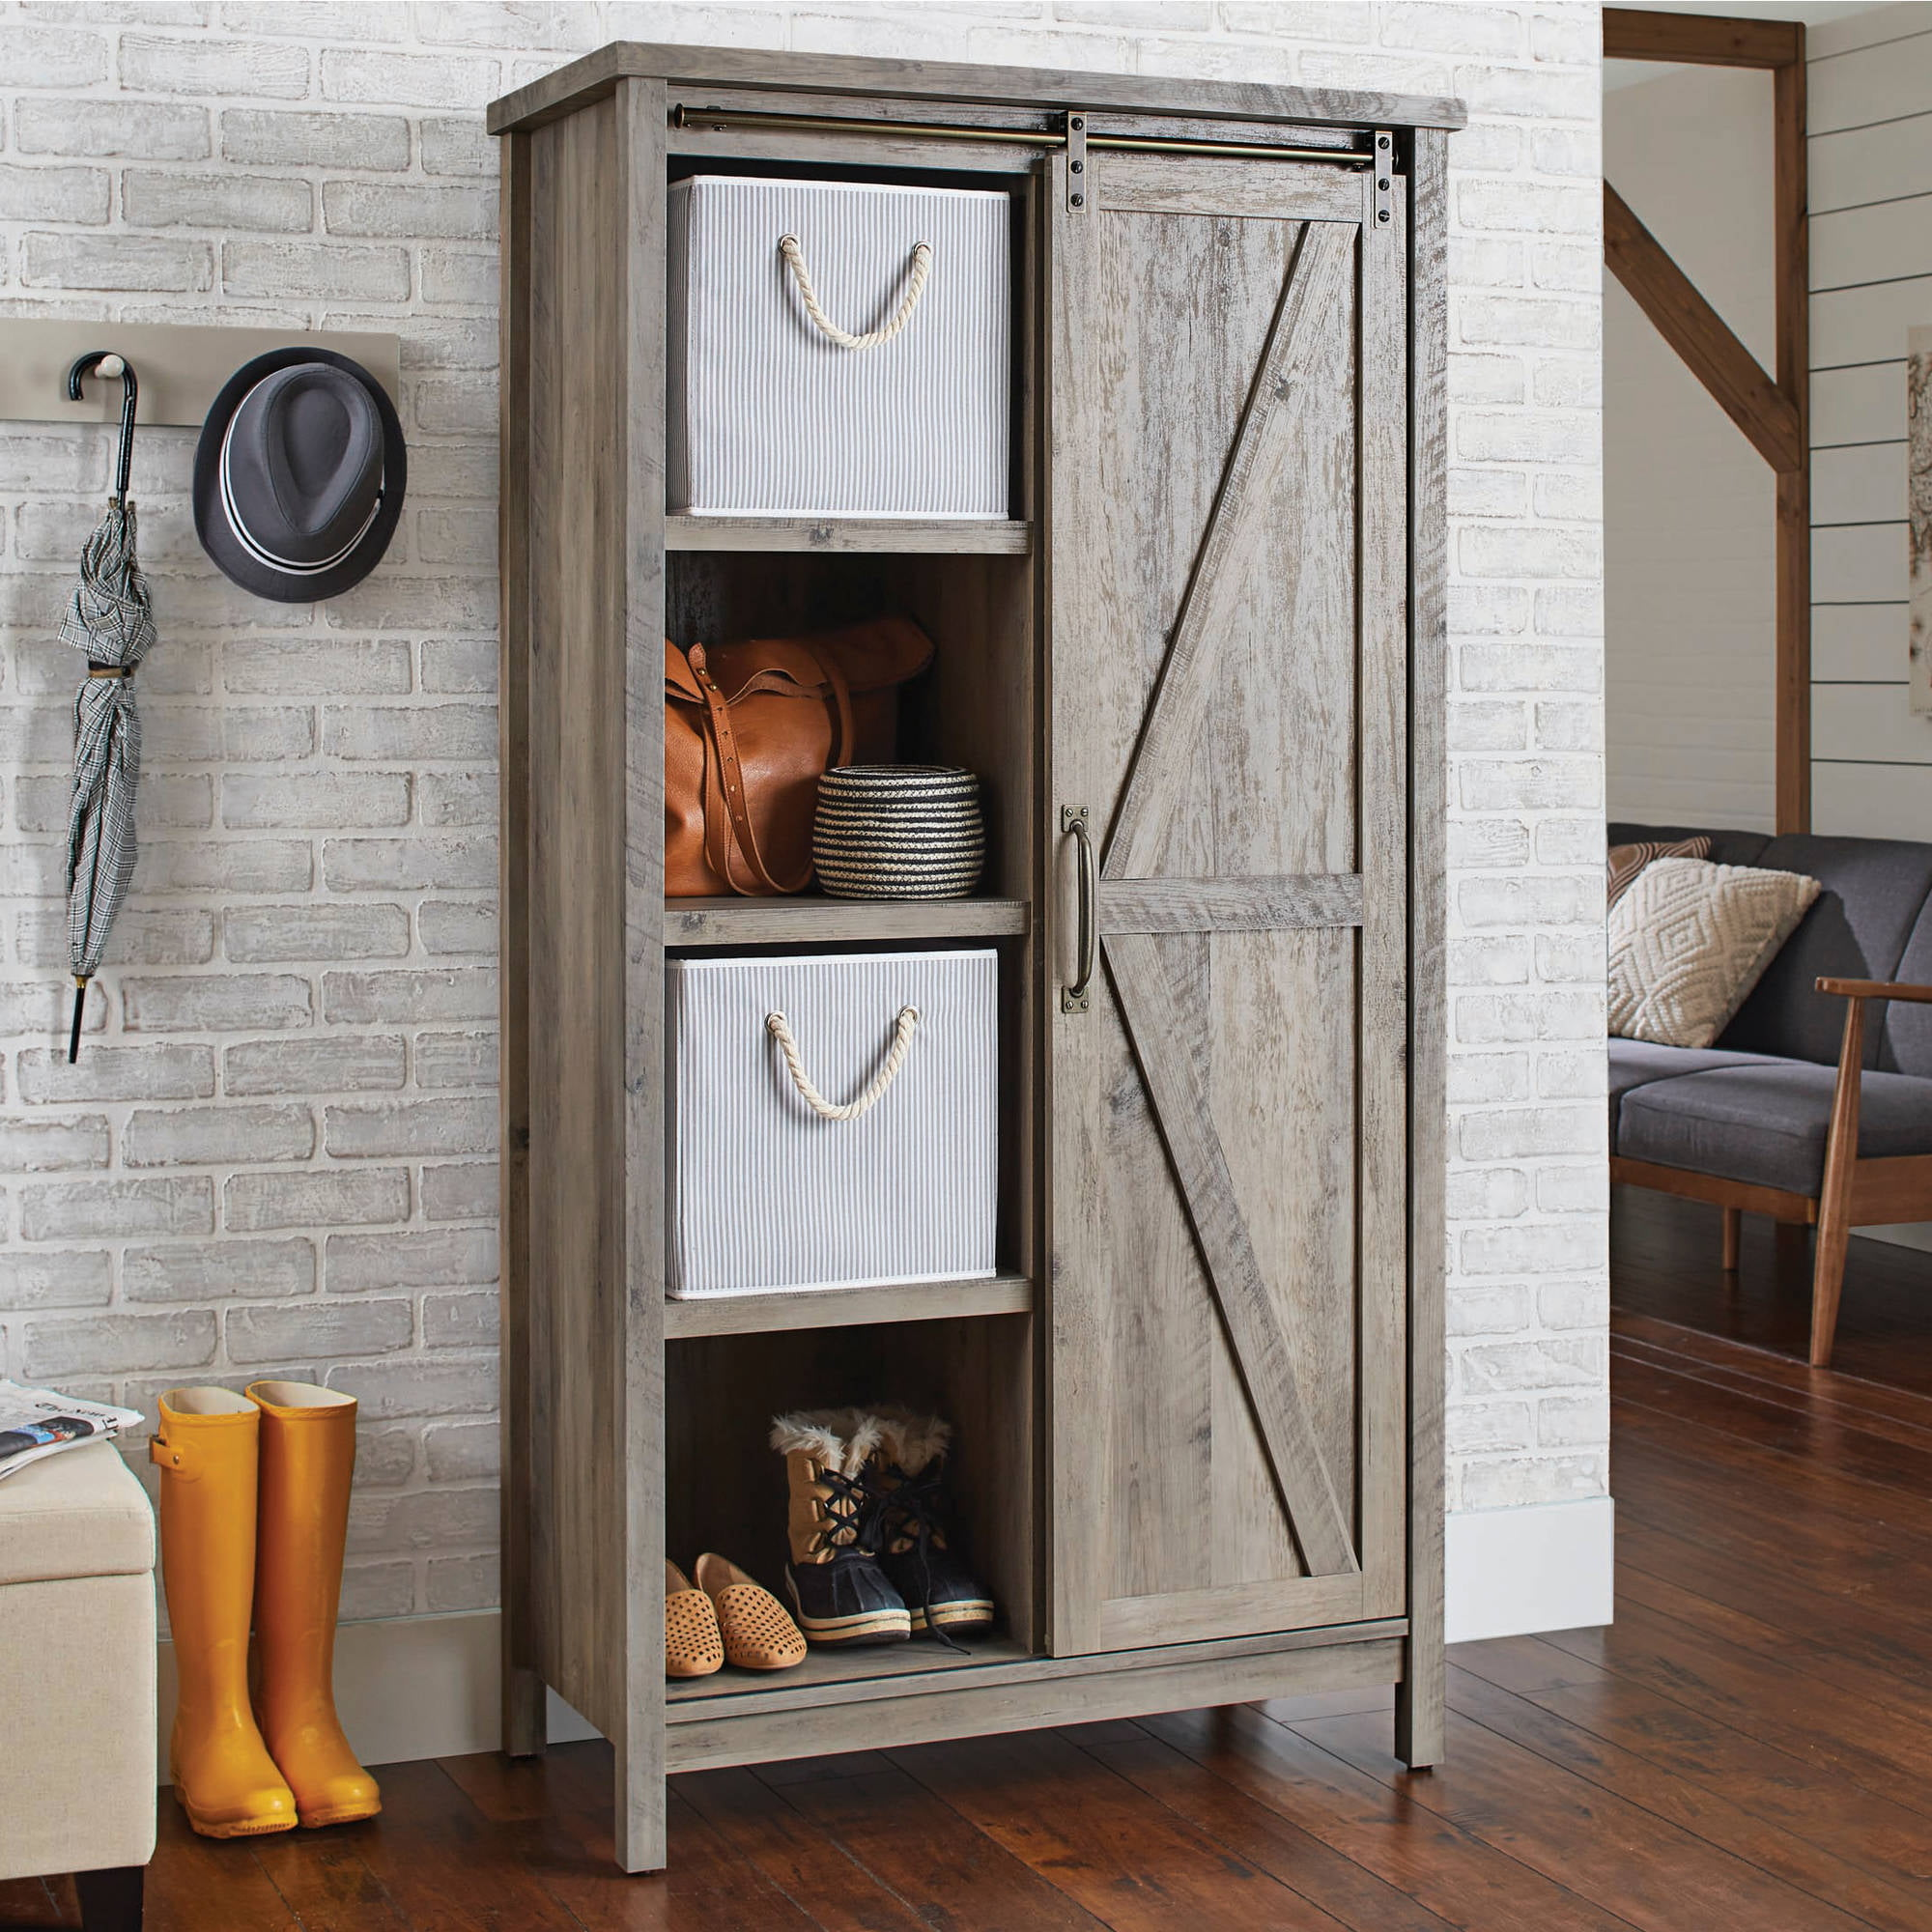 Better Homes and Gardens Modern Farmhouse Storage Cabinet, Rustic ...